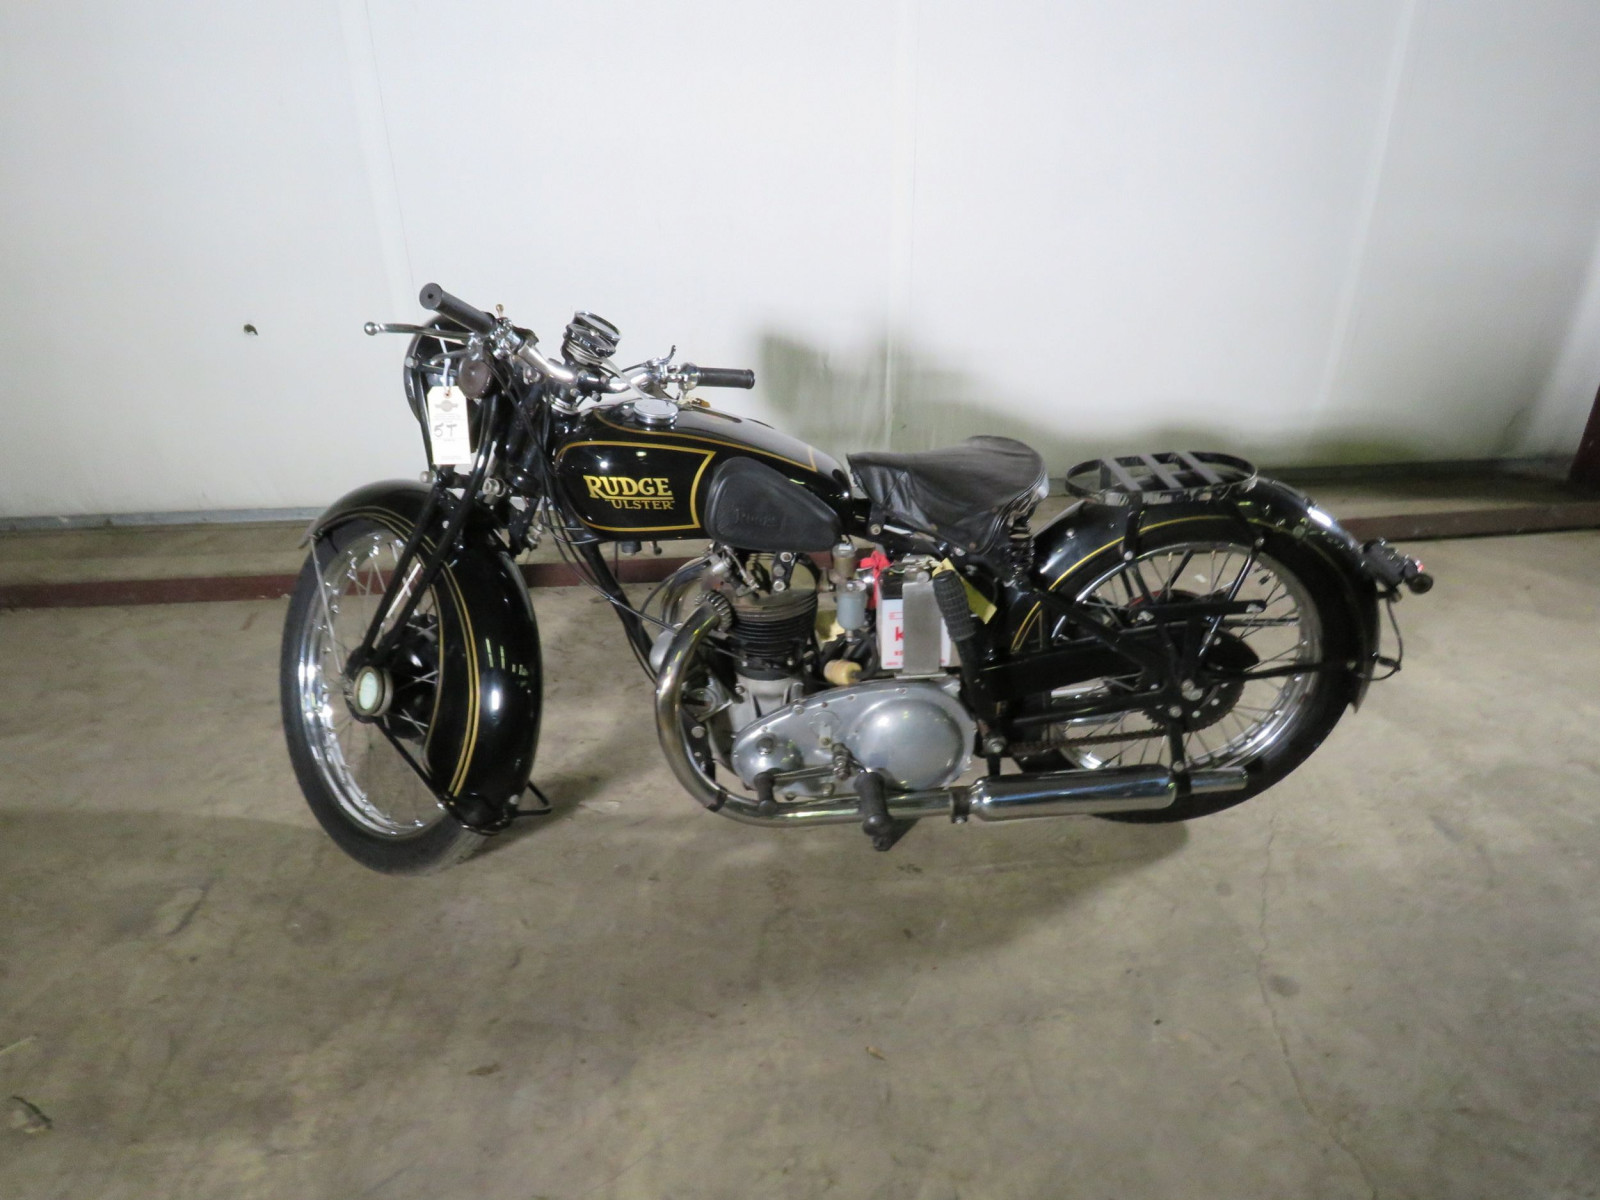 1939 Rudge Ulster Prewar Road Race Motorcycle - Image 16